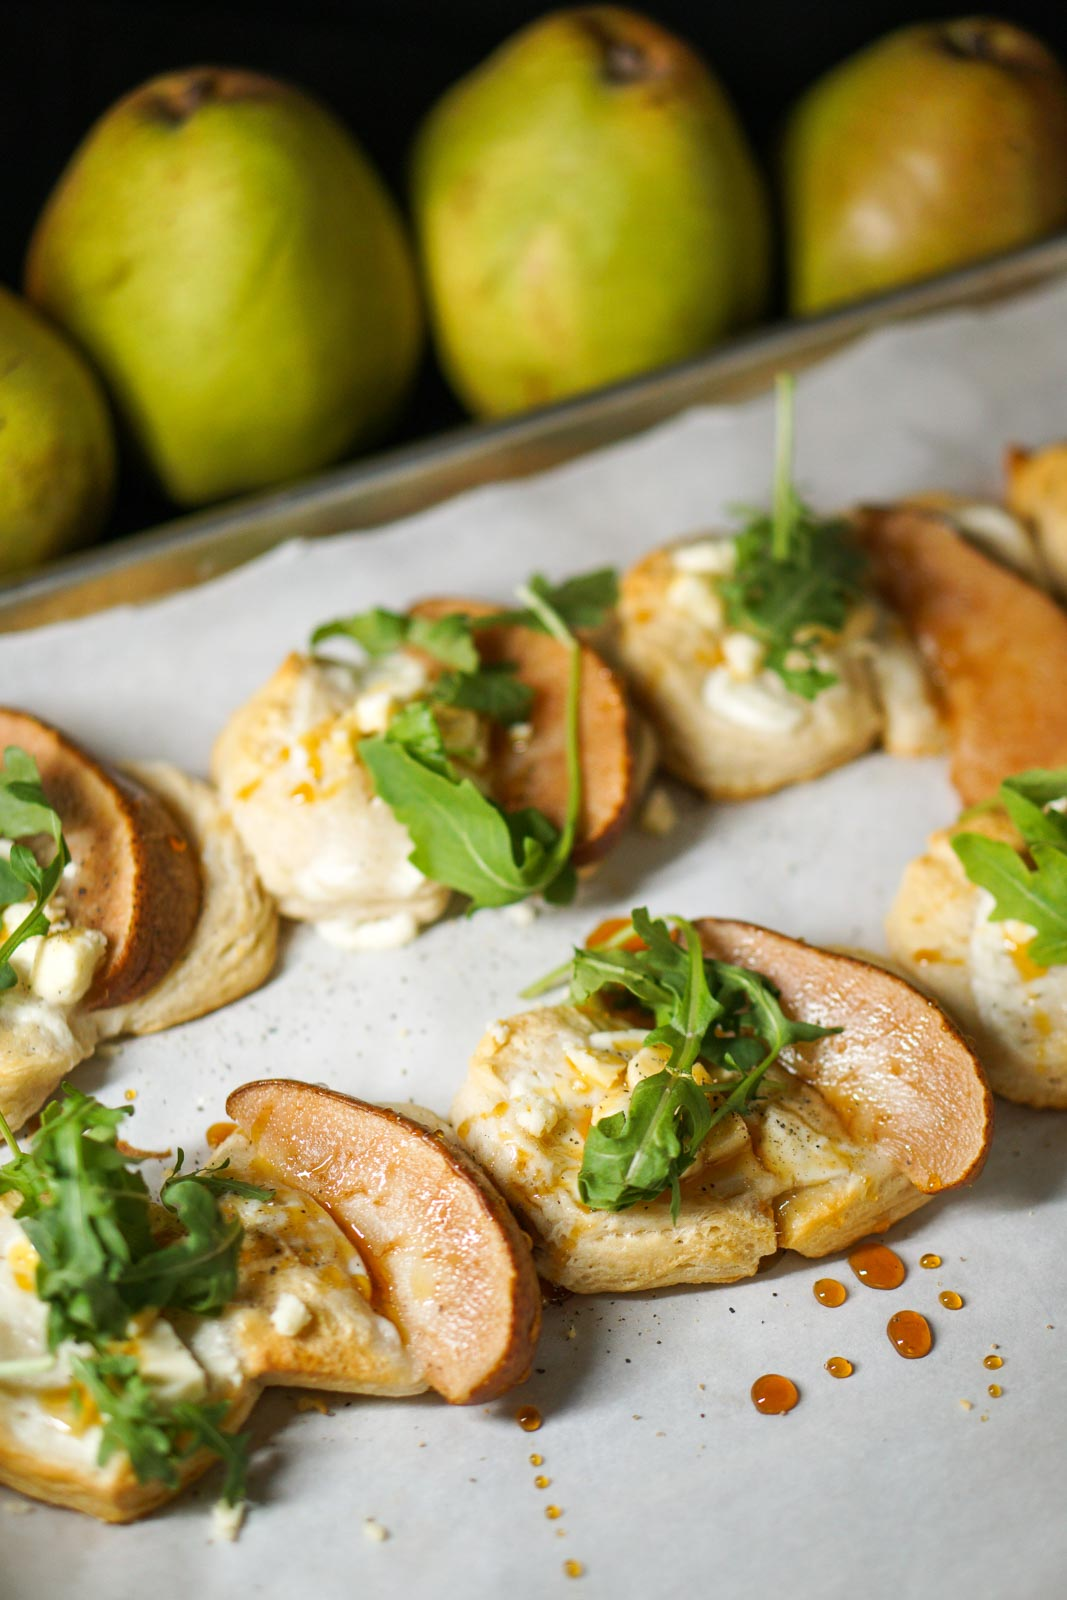 Pratt_Holiday-Pears_005.jpg